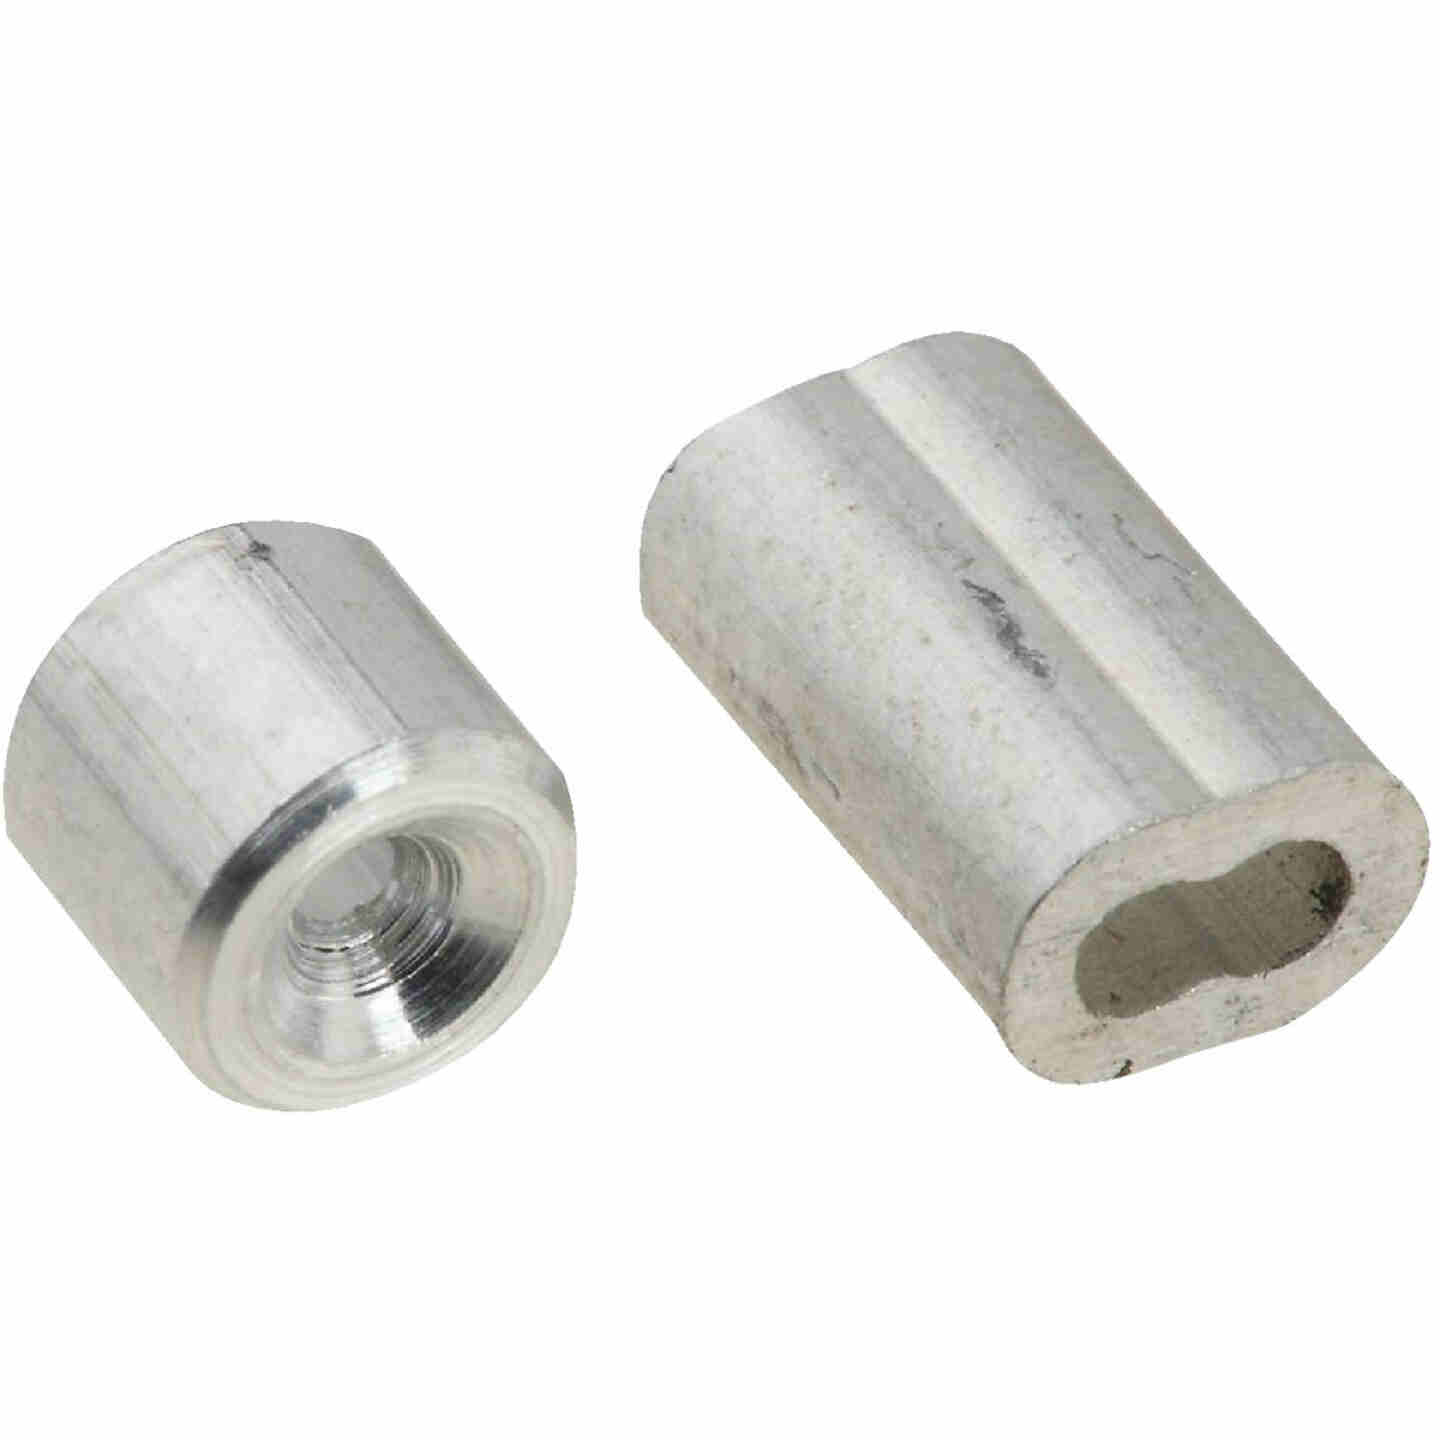 National 1/16 In. Aluminum Garage Door Ferrule & Stop Kit Image 1